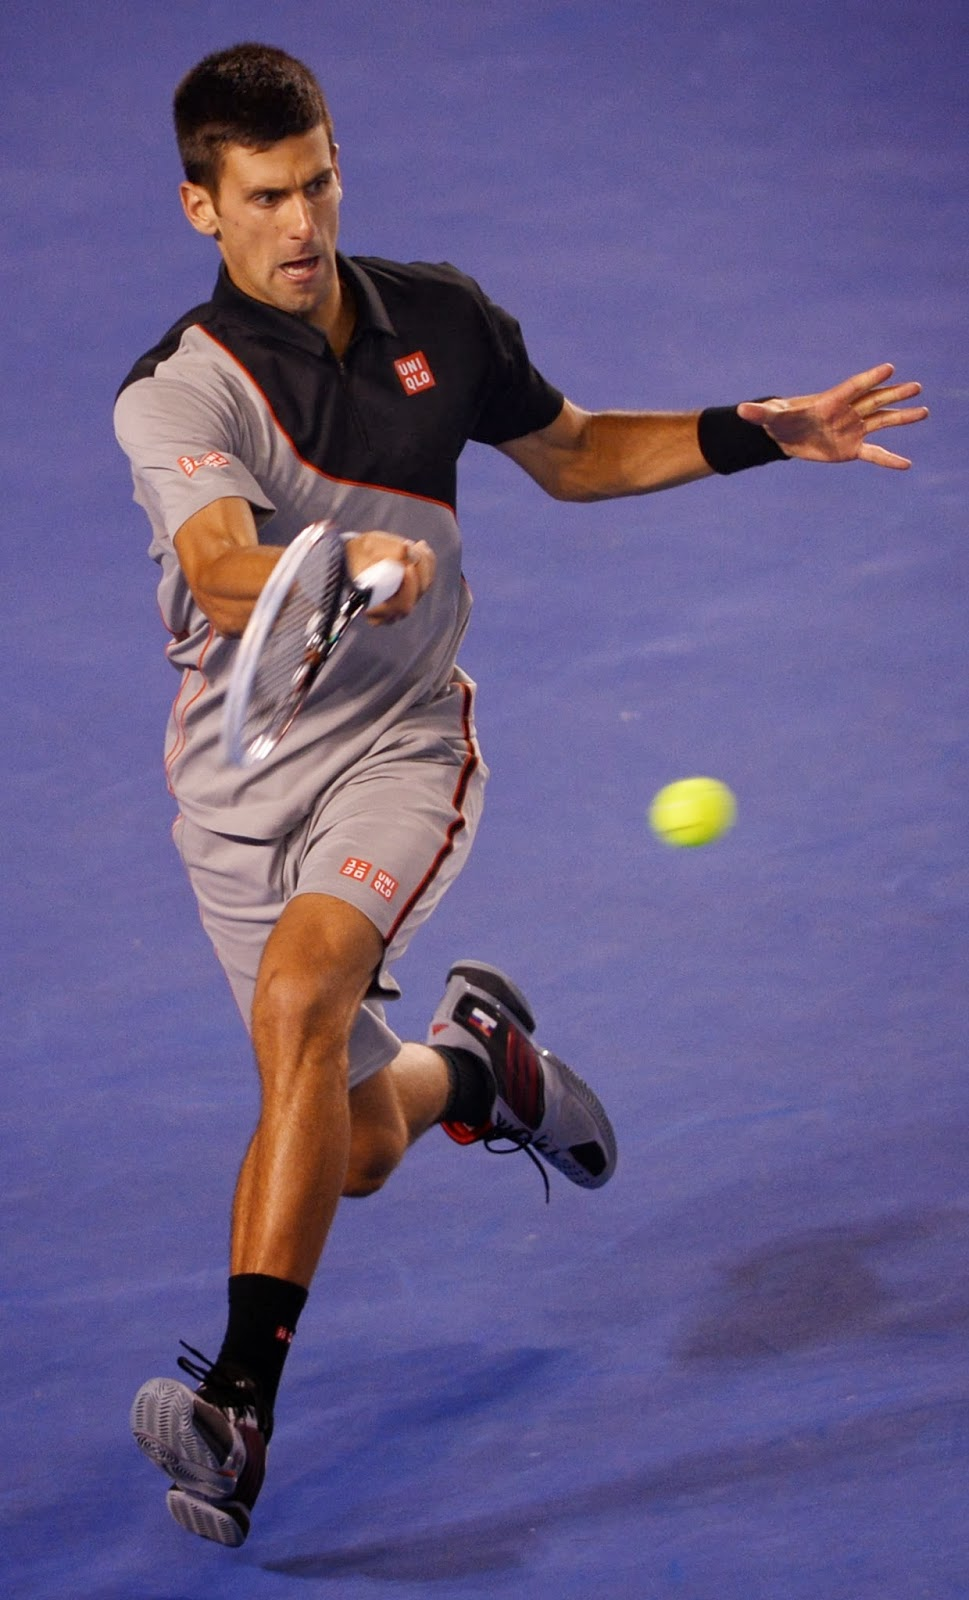 Australian Open, Novak Djokovic, Beat, Stanislas Wawrinka, Tennis, Australia, Melbourne, Men, Single, Match, Serbia, Switzerland, Celebration, Victory, Celebration, 2014,